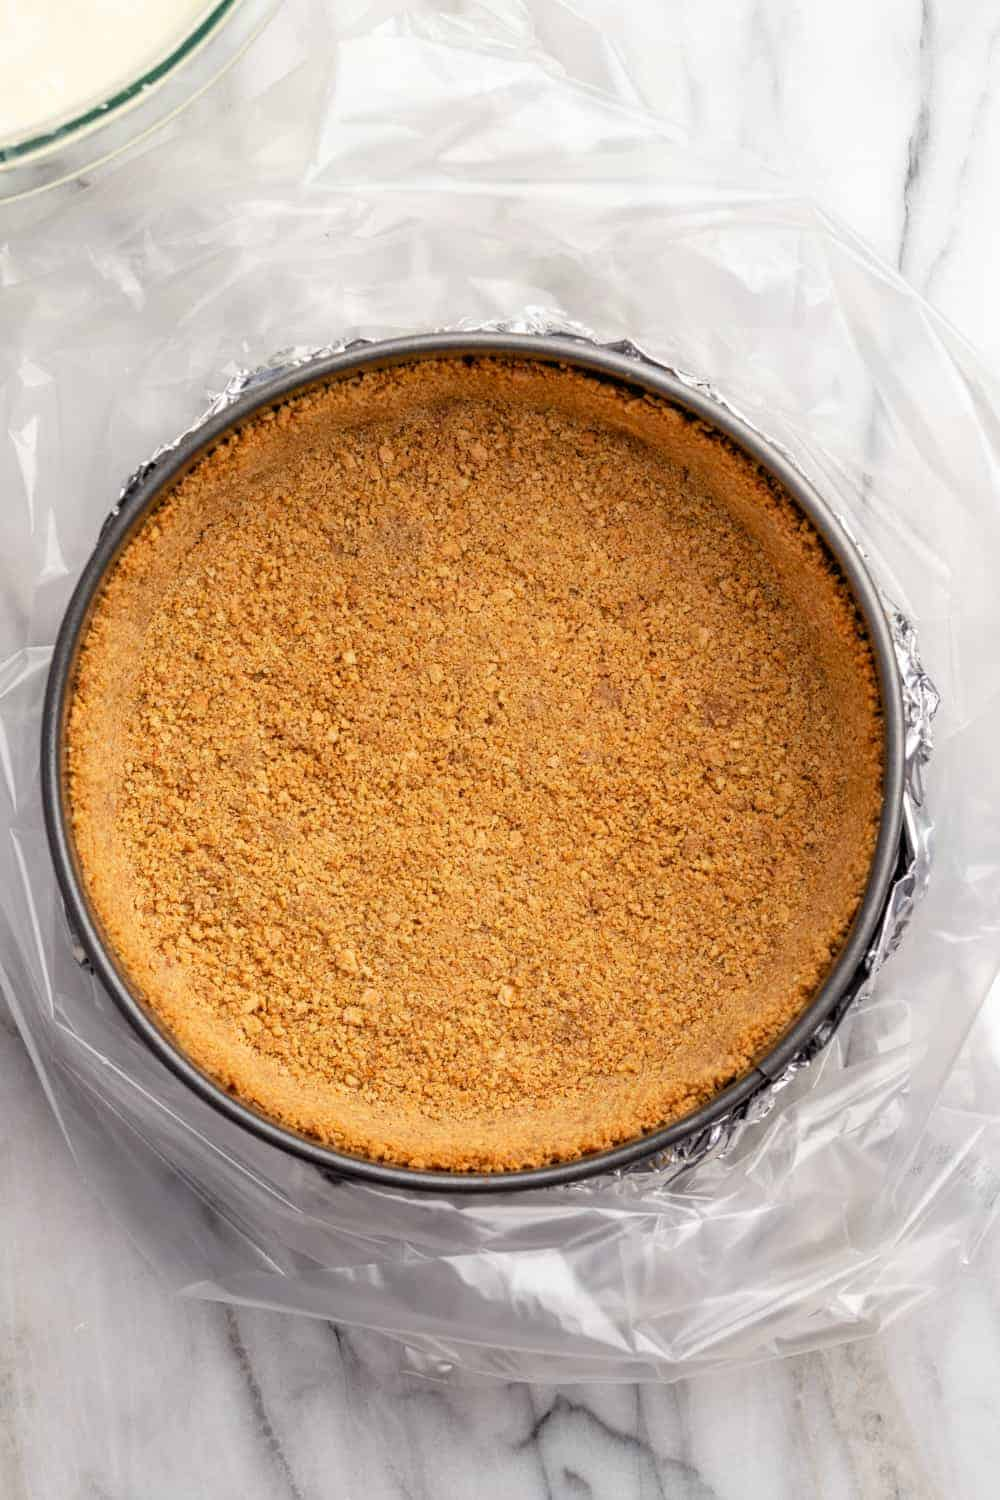 Baked graham cracker crust in a springform pan, ready to add cheesecake filling